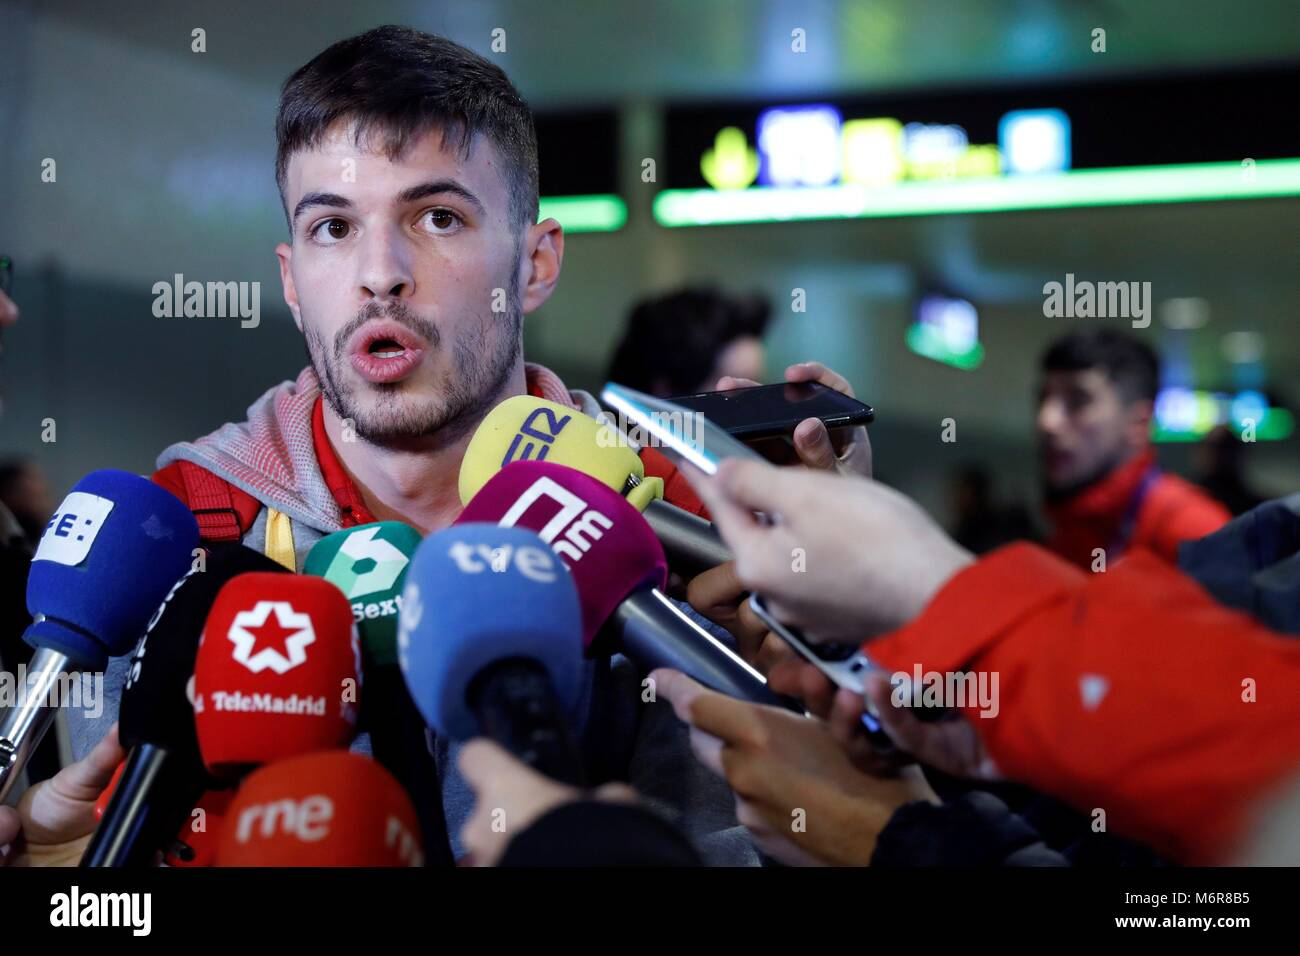 Madrid, Spain. 06th Mar, 2018. Spanish athlete Oscar Husillos, disqualified after winning 400 metres final in Birmingham, - Stock Image